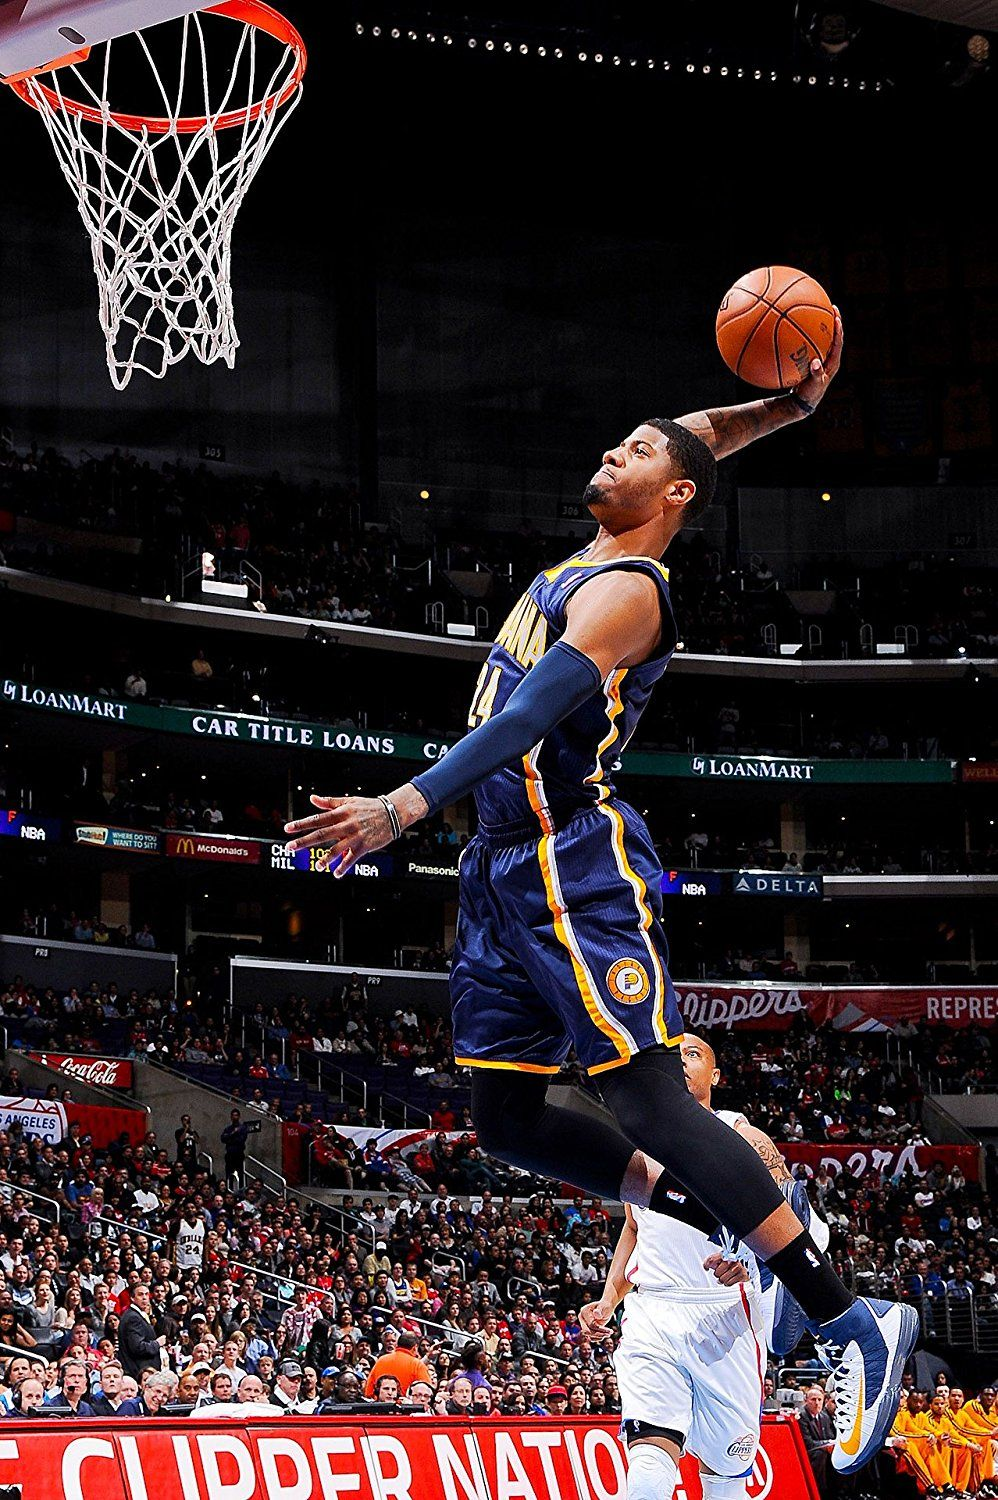 Paul George Slam Dunk Indiana Pacers Basketball Poster Art ...